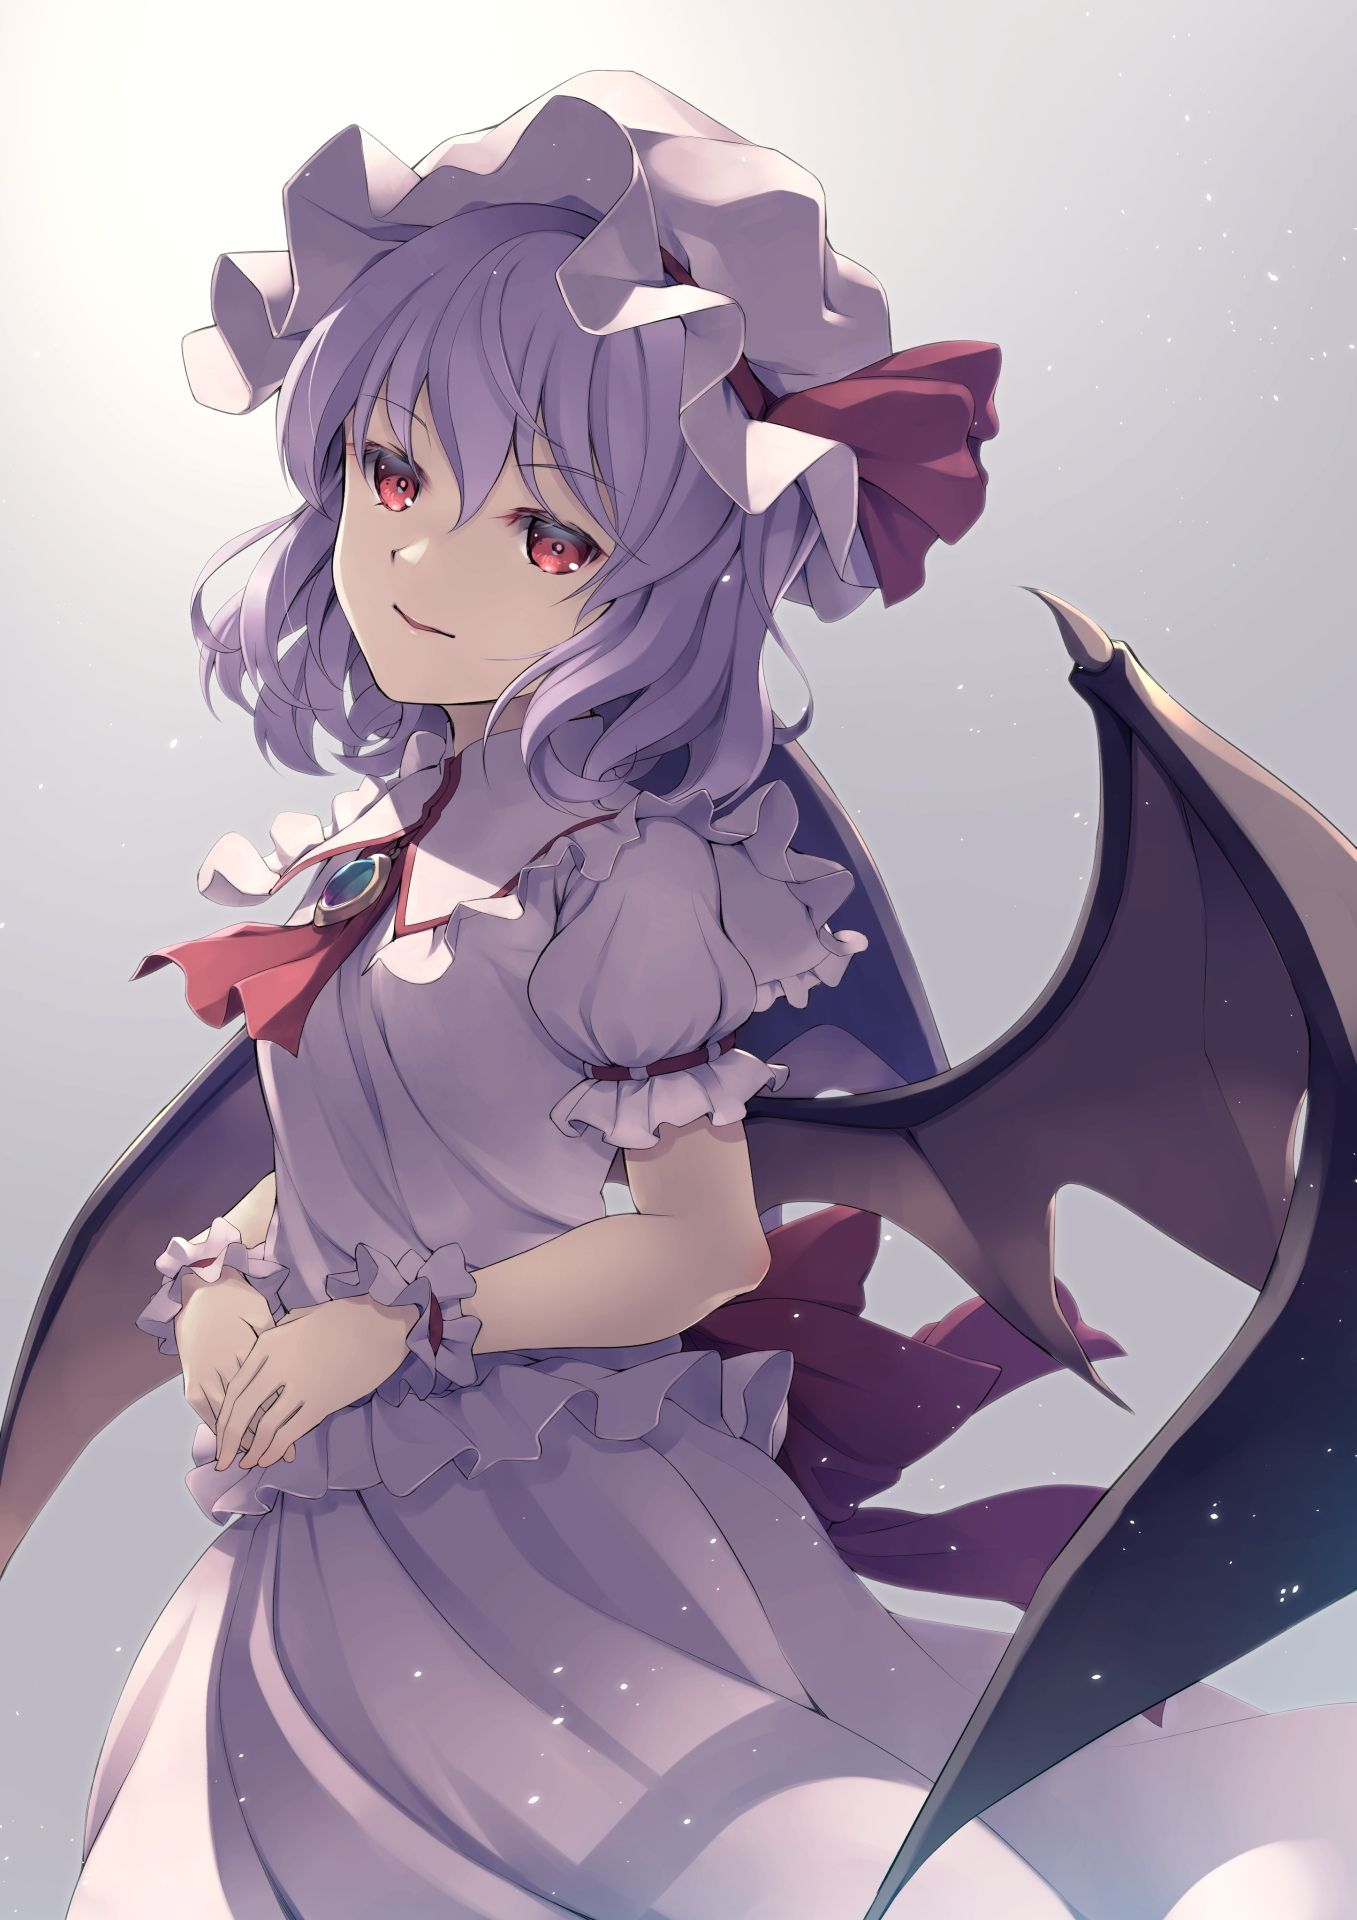 Remilia (With images) Anime people, Anime stories